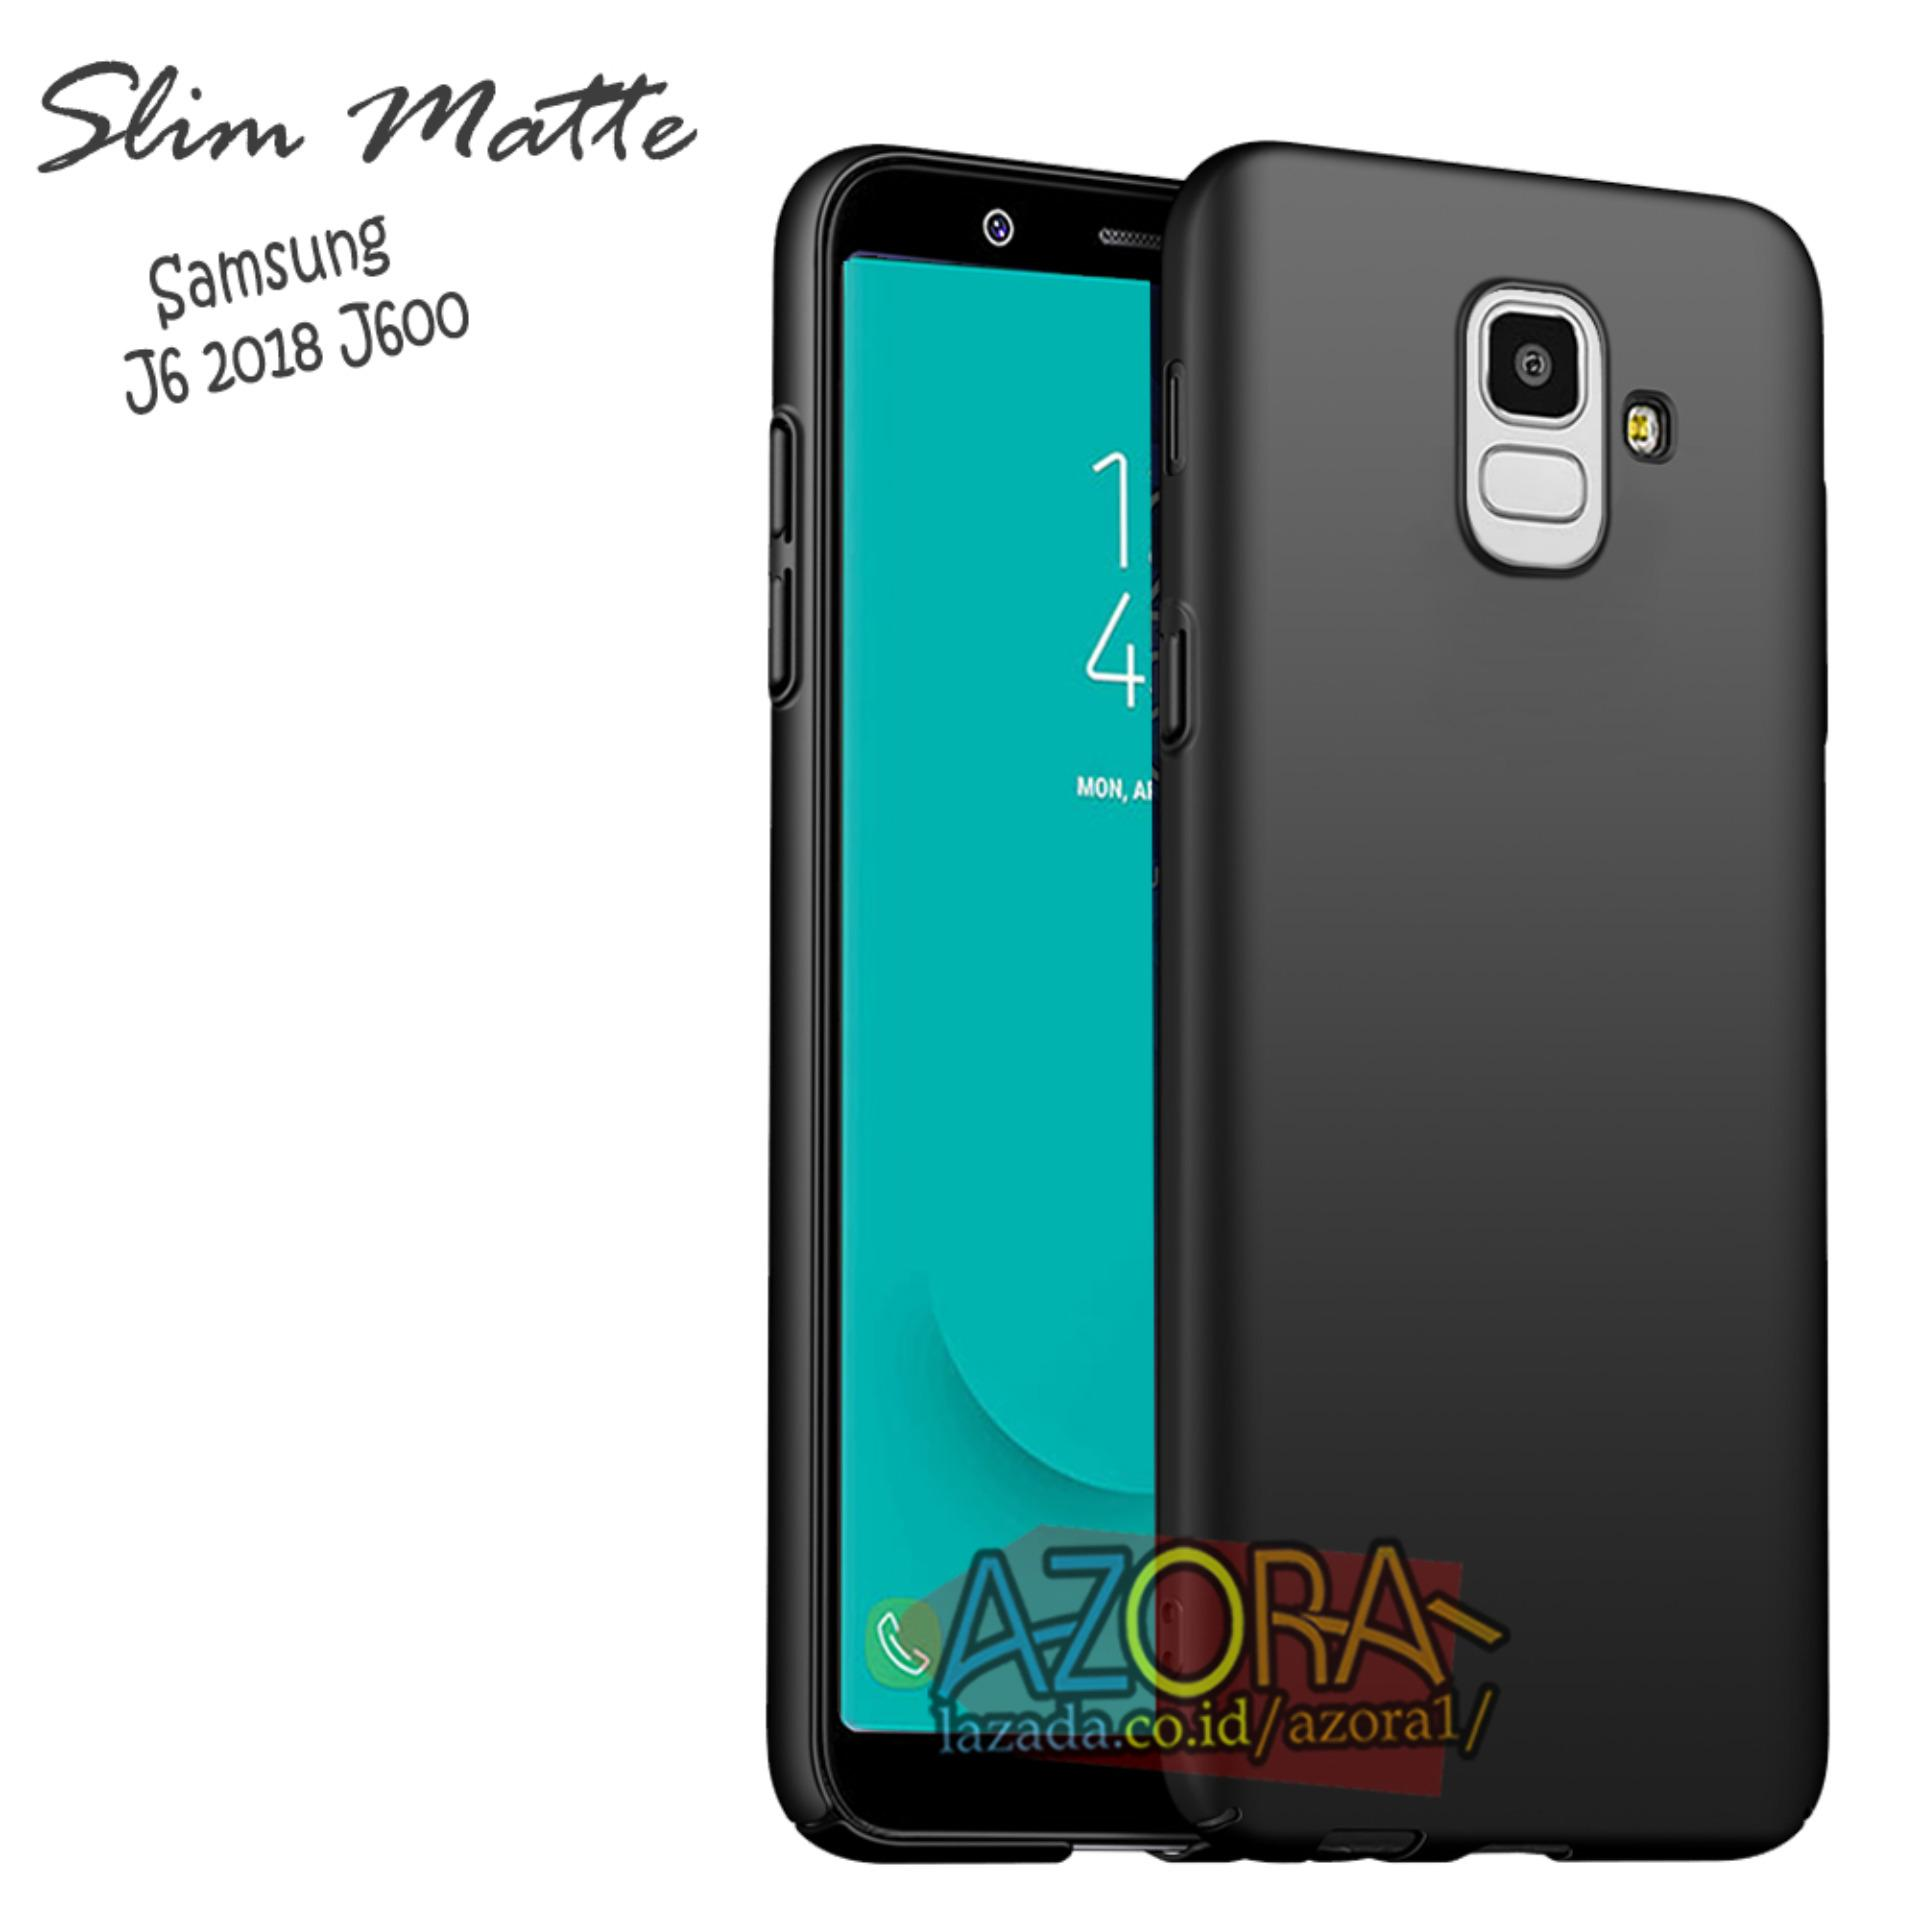 Case Slim Black Matte Samsung Galaxy J6 2018 J600 Baby Skin Softcase Ultra Thin Jelly Silikon Babyskin